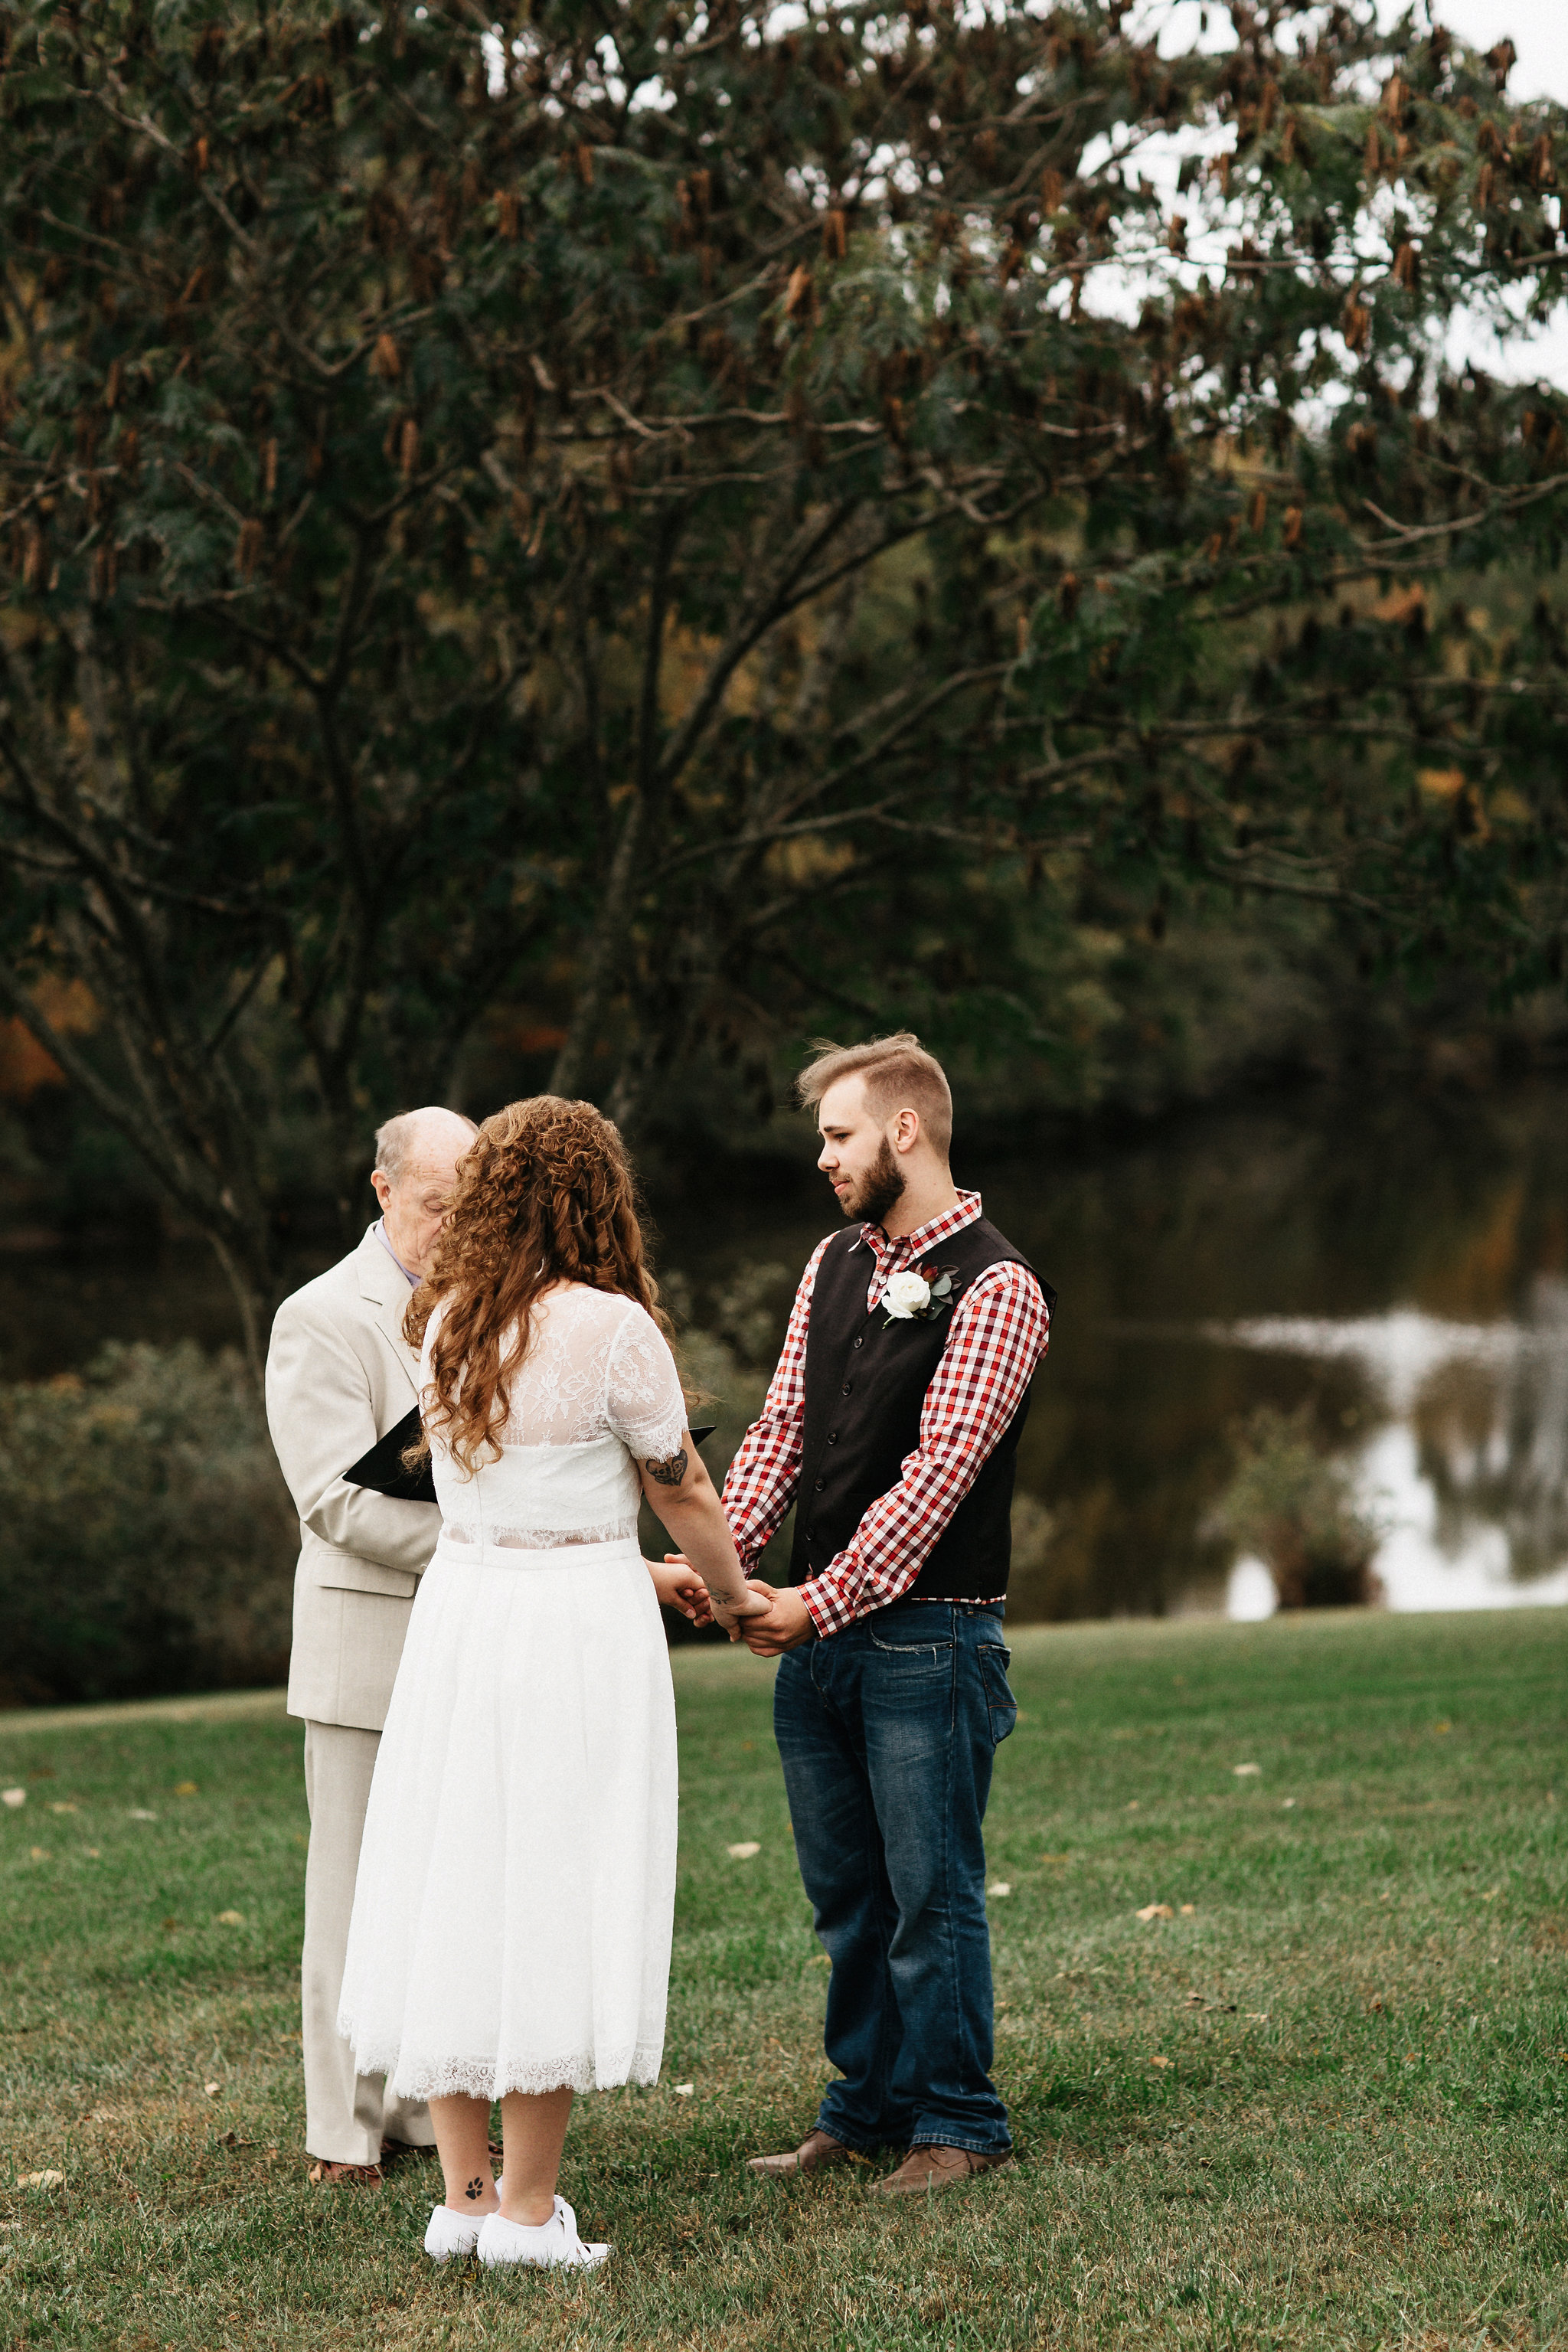 Caitlin&CodyMarried2017-11-03at19.19.37PM32.jpg